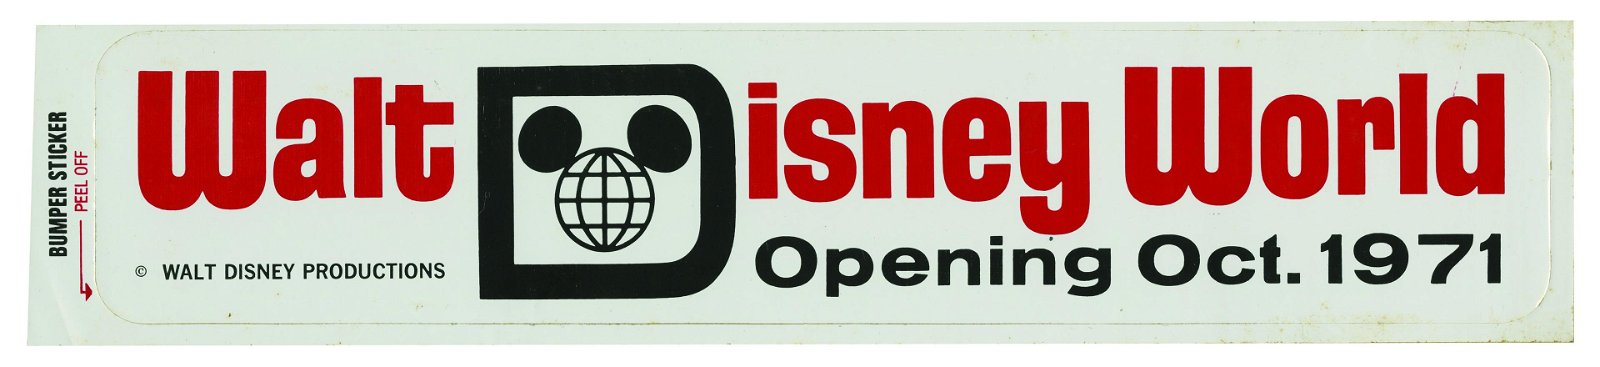 Walt Disney World Pre-Opening Bumper Sticker.